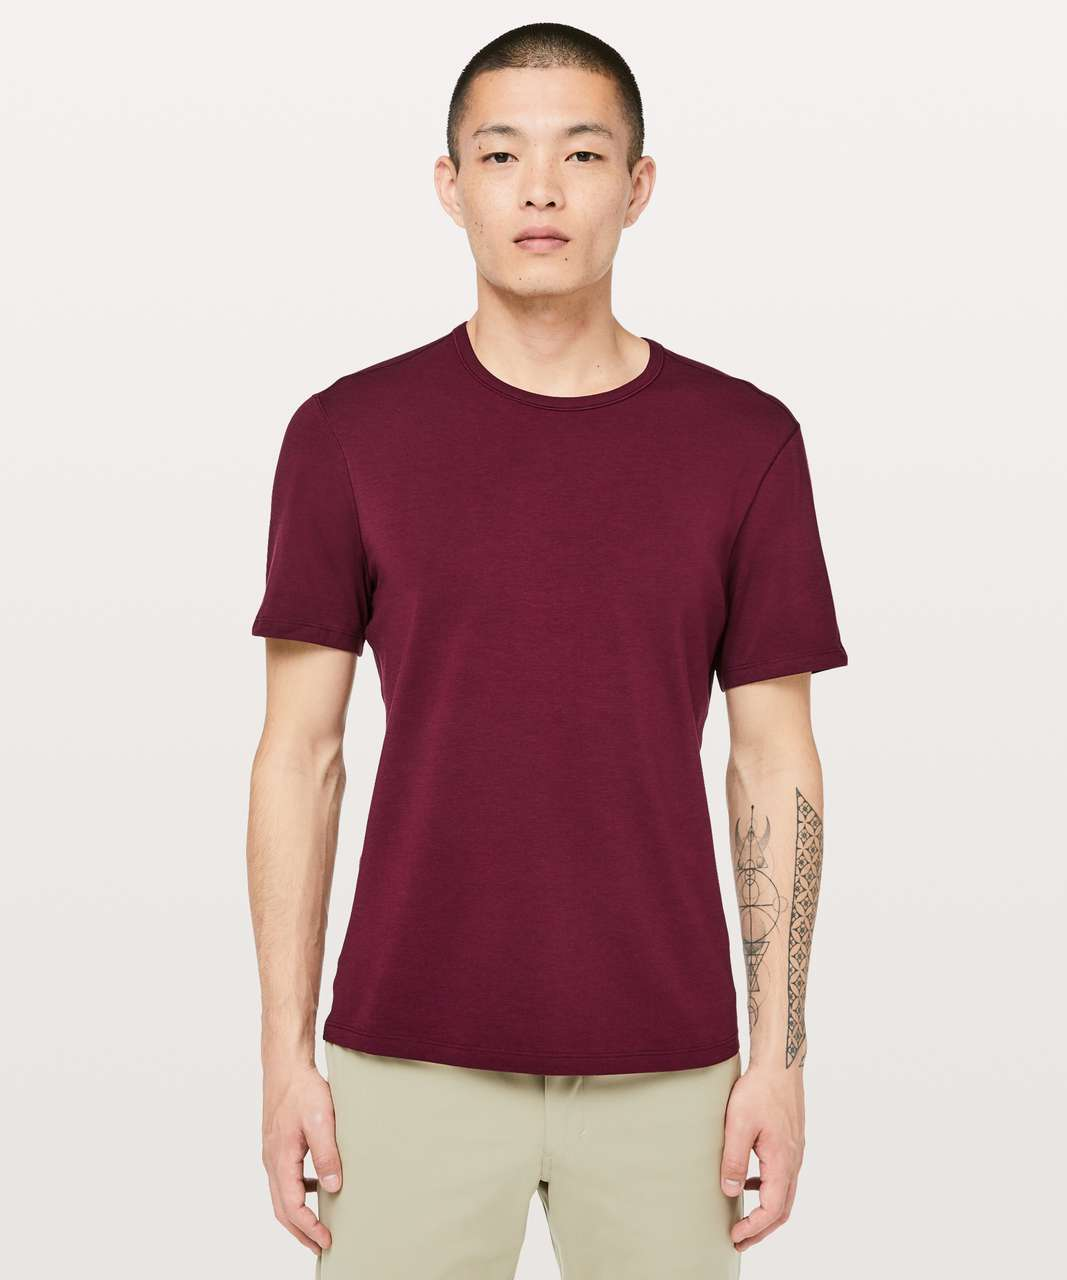 Lululemon 5 Year Basic Tee *Updated Fit - Deep Ruby